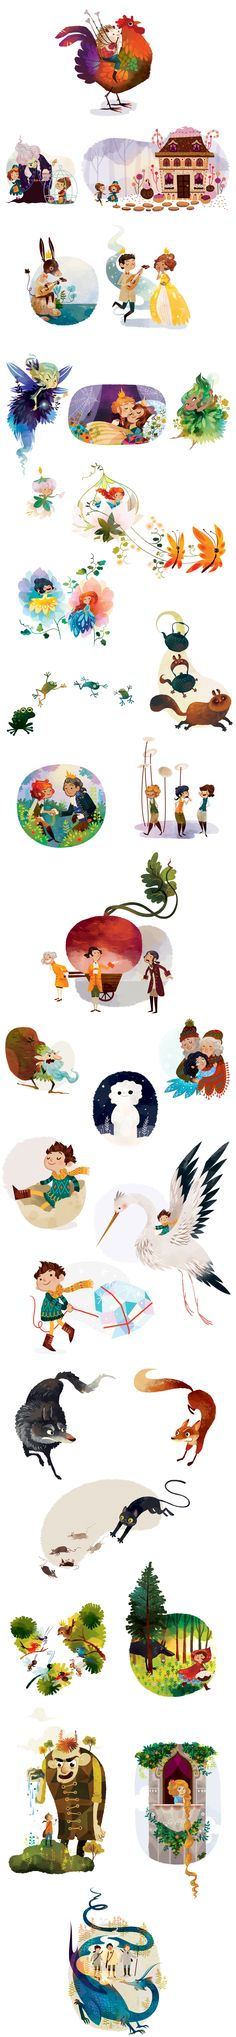 Fairy Tales by Lorena Gomez Alvarez • great illustration vignettes